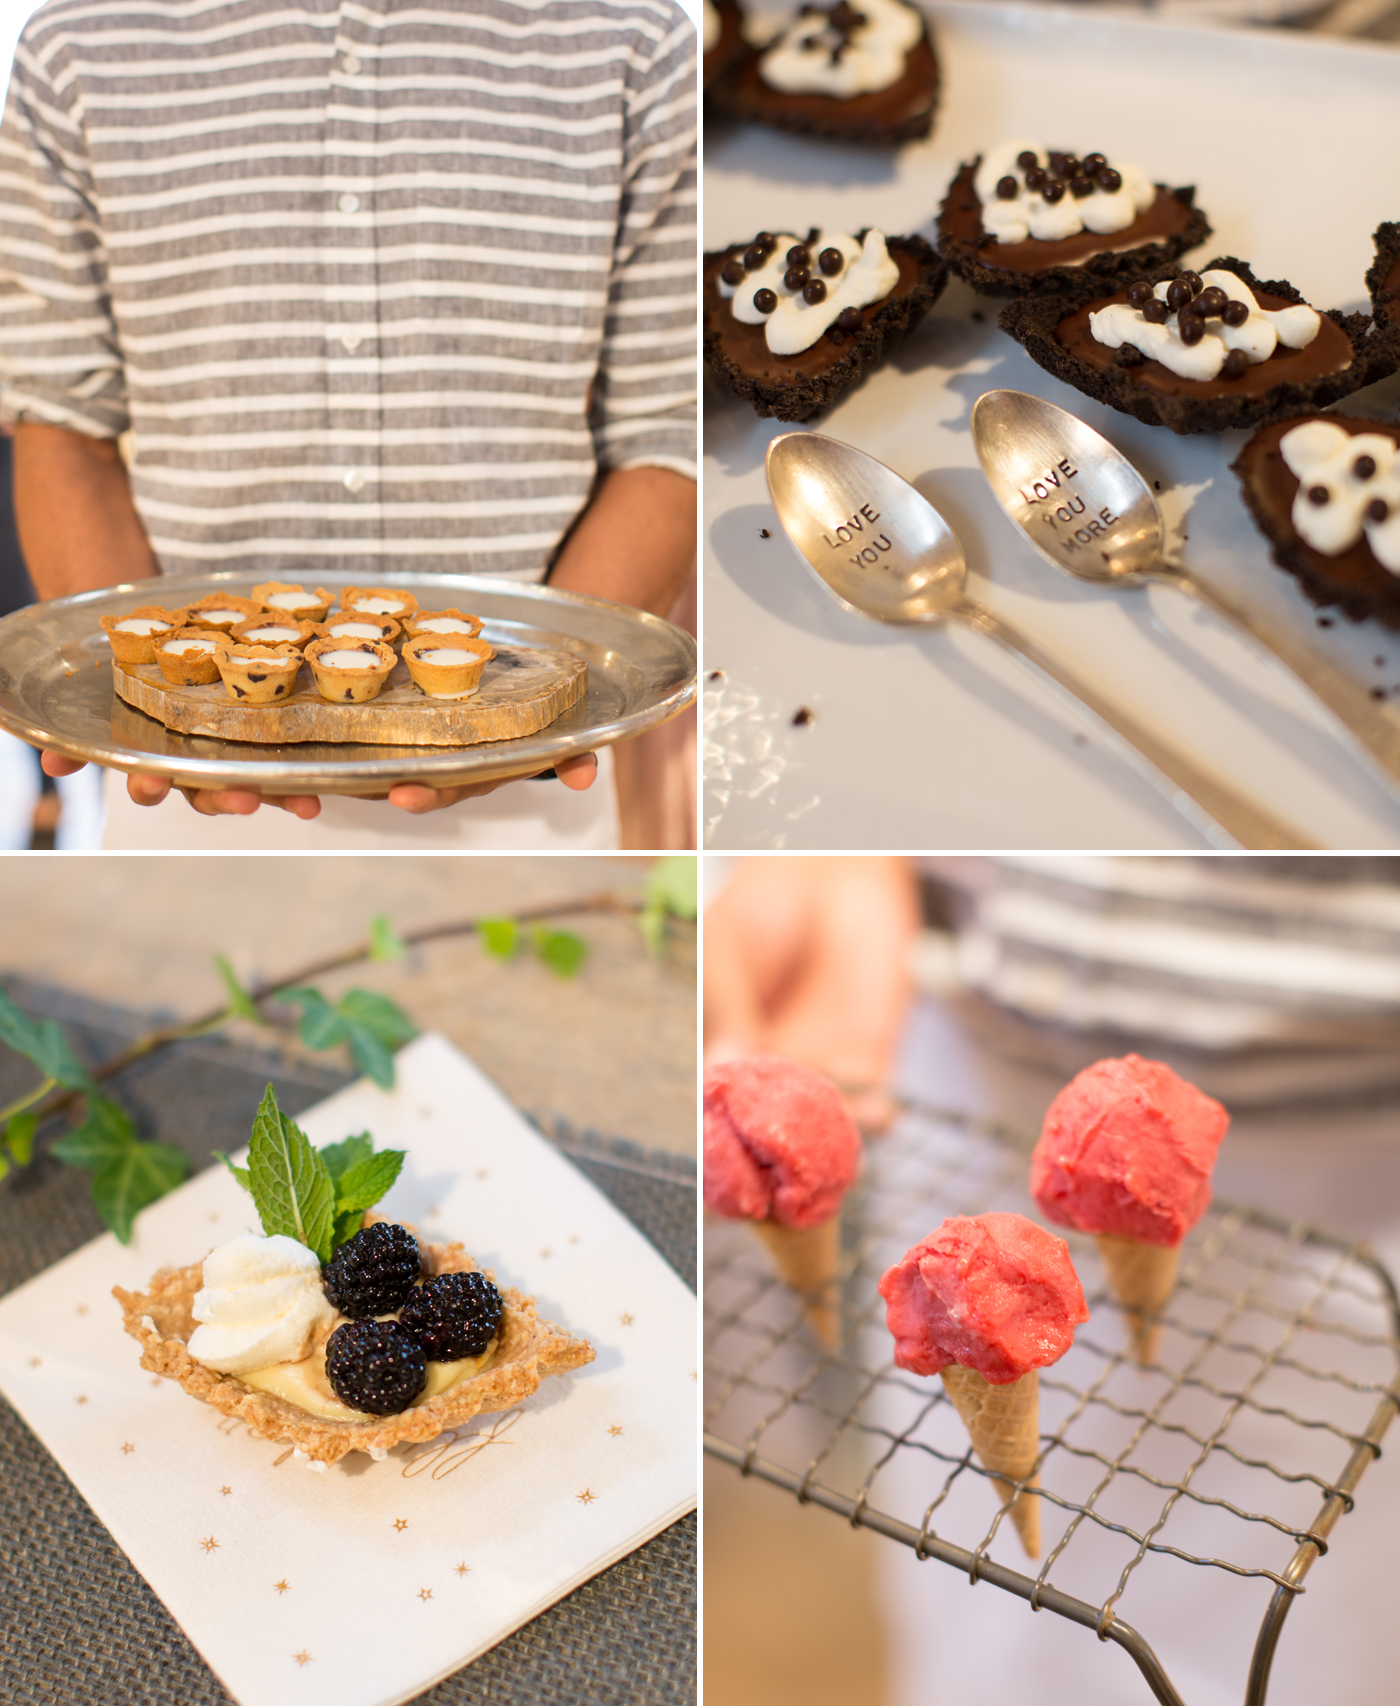 mini desserts by the kitchen for exploring foods